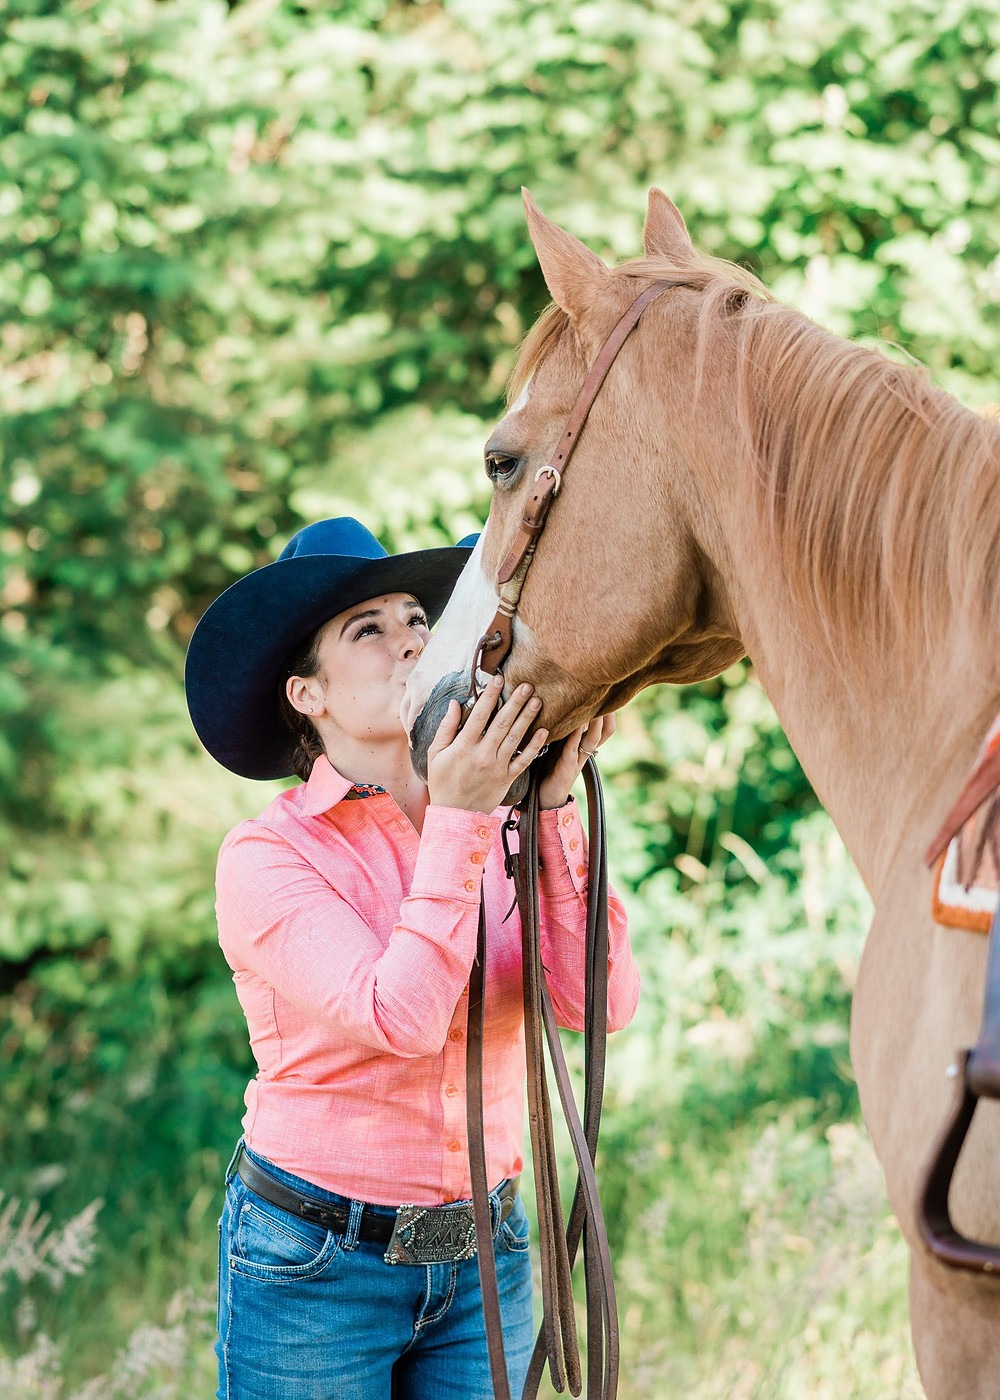 Katie kissing Rico, a red Dun quarter horse on the nose